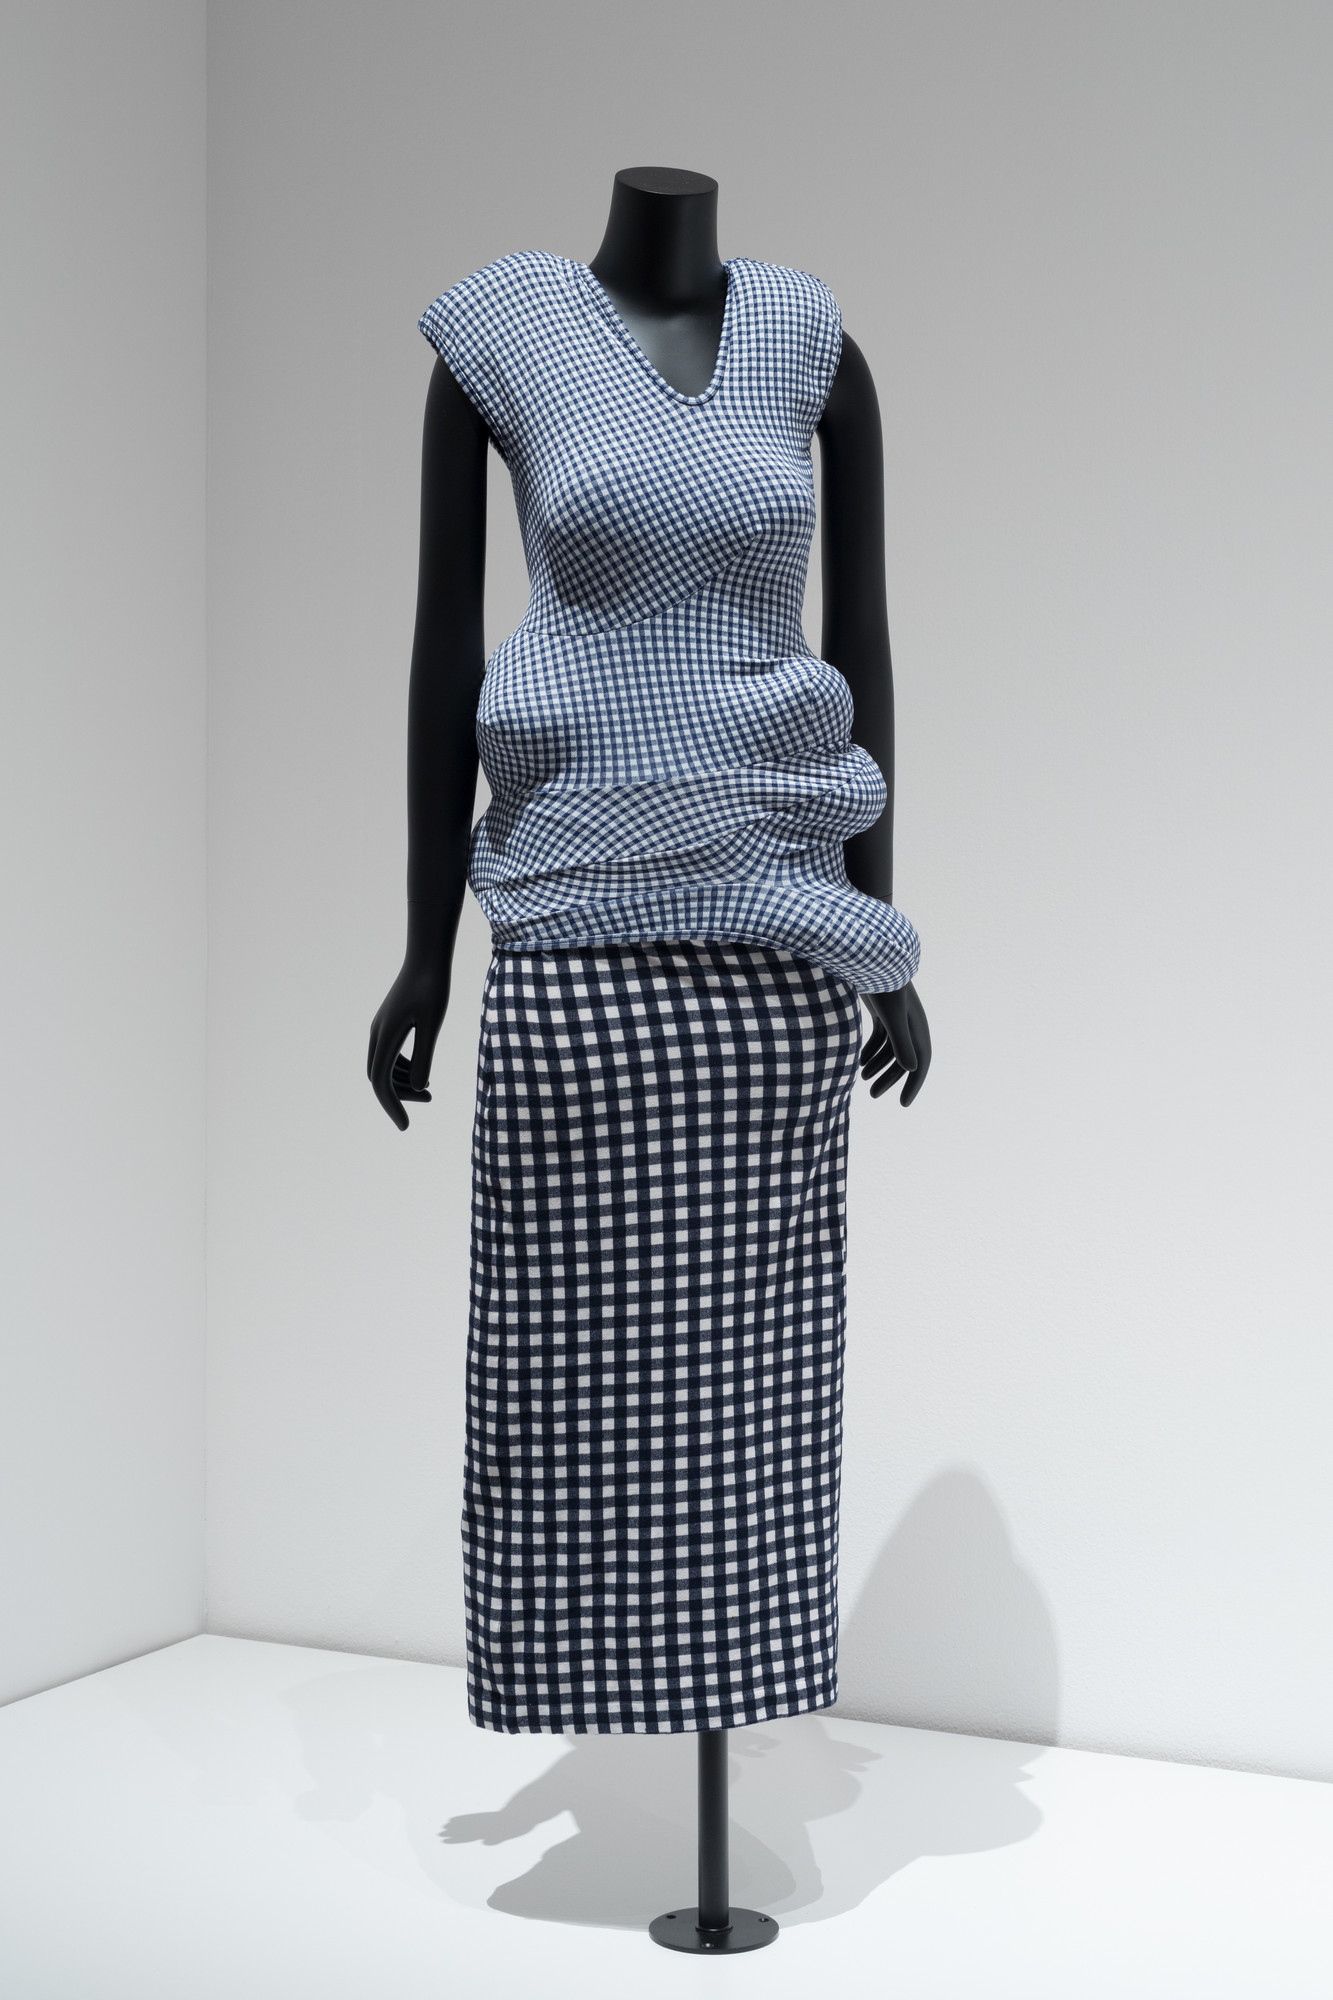 Rei Kawakubo (Japanese, born 1942). Comme des Garçons (Japan, founded 1973). Ensemble (bodice and skirt). Spring/summer 1997. Body Meets Dress--Dress Meets Body collection. Stretch polyester. Indianapolis Museum of Art. Fashion Arts Society Acquisition Fund. Purchased with funds provided by F. Timothy and Nancy Nagler